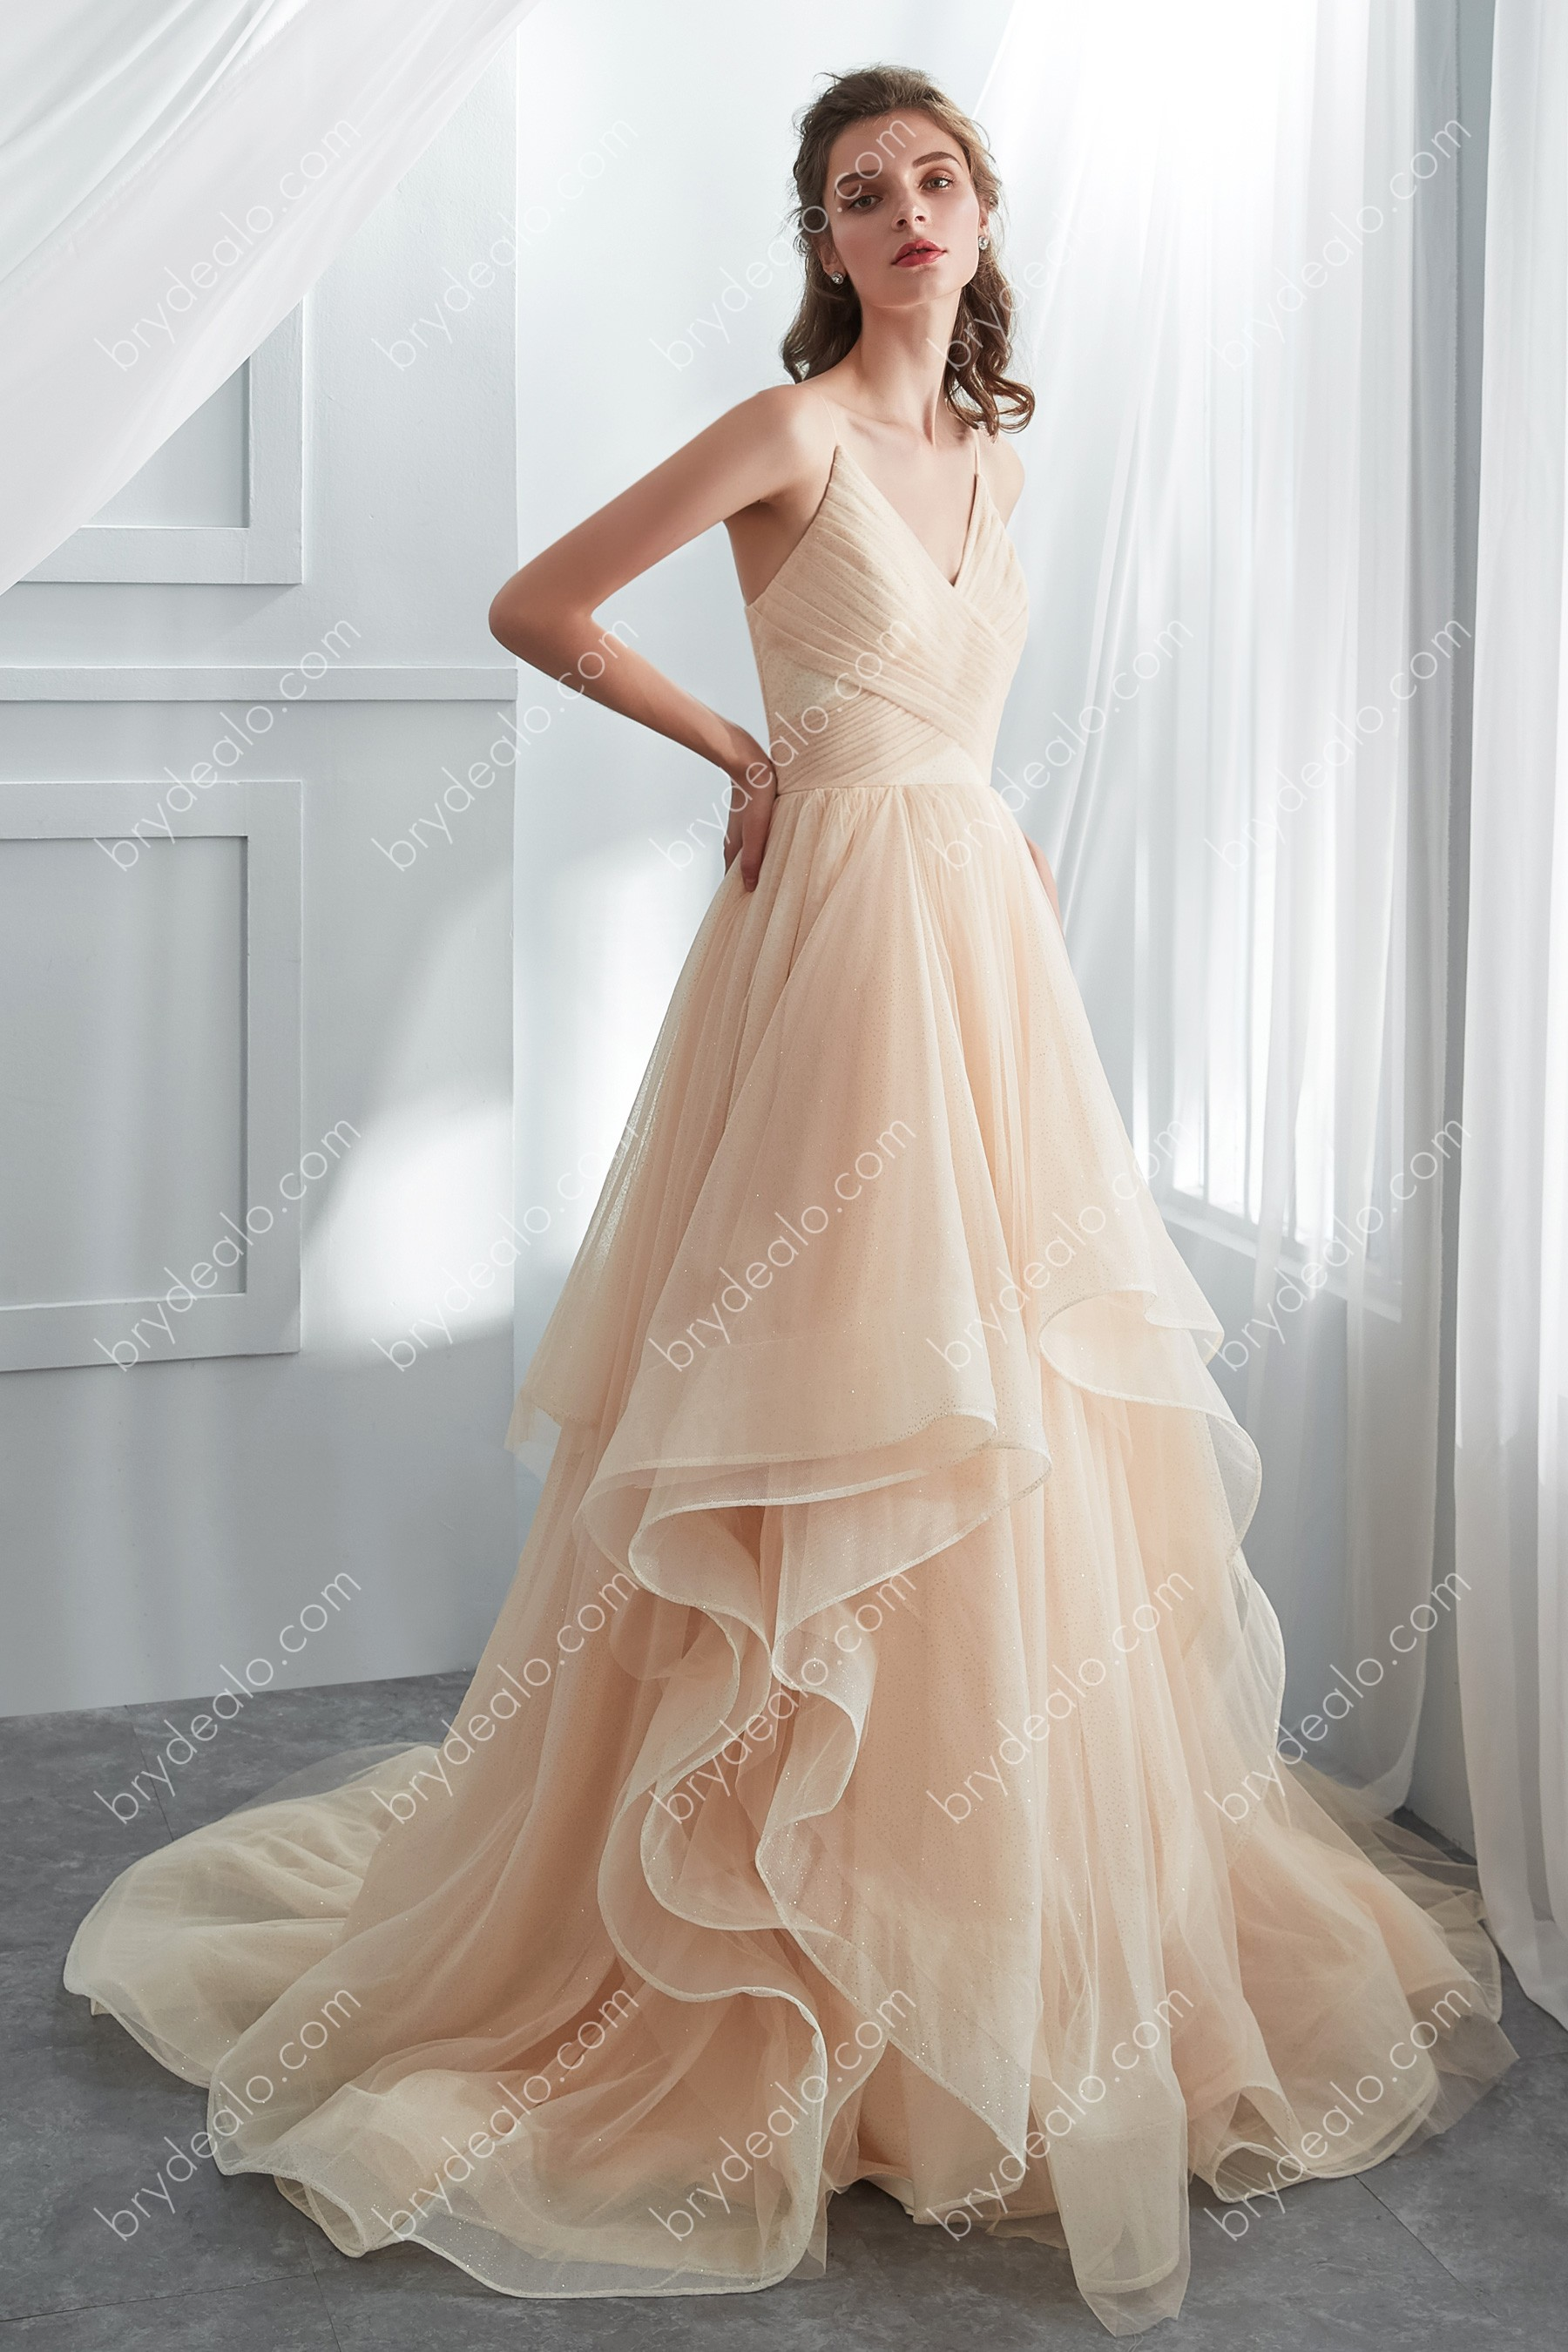 Designer Shimmer Champagne Tulle Layered Ballgown Wedding Dress